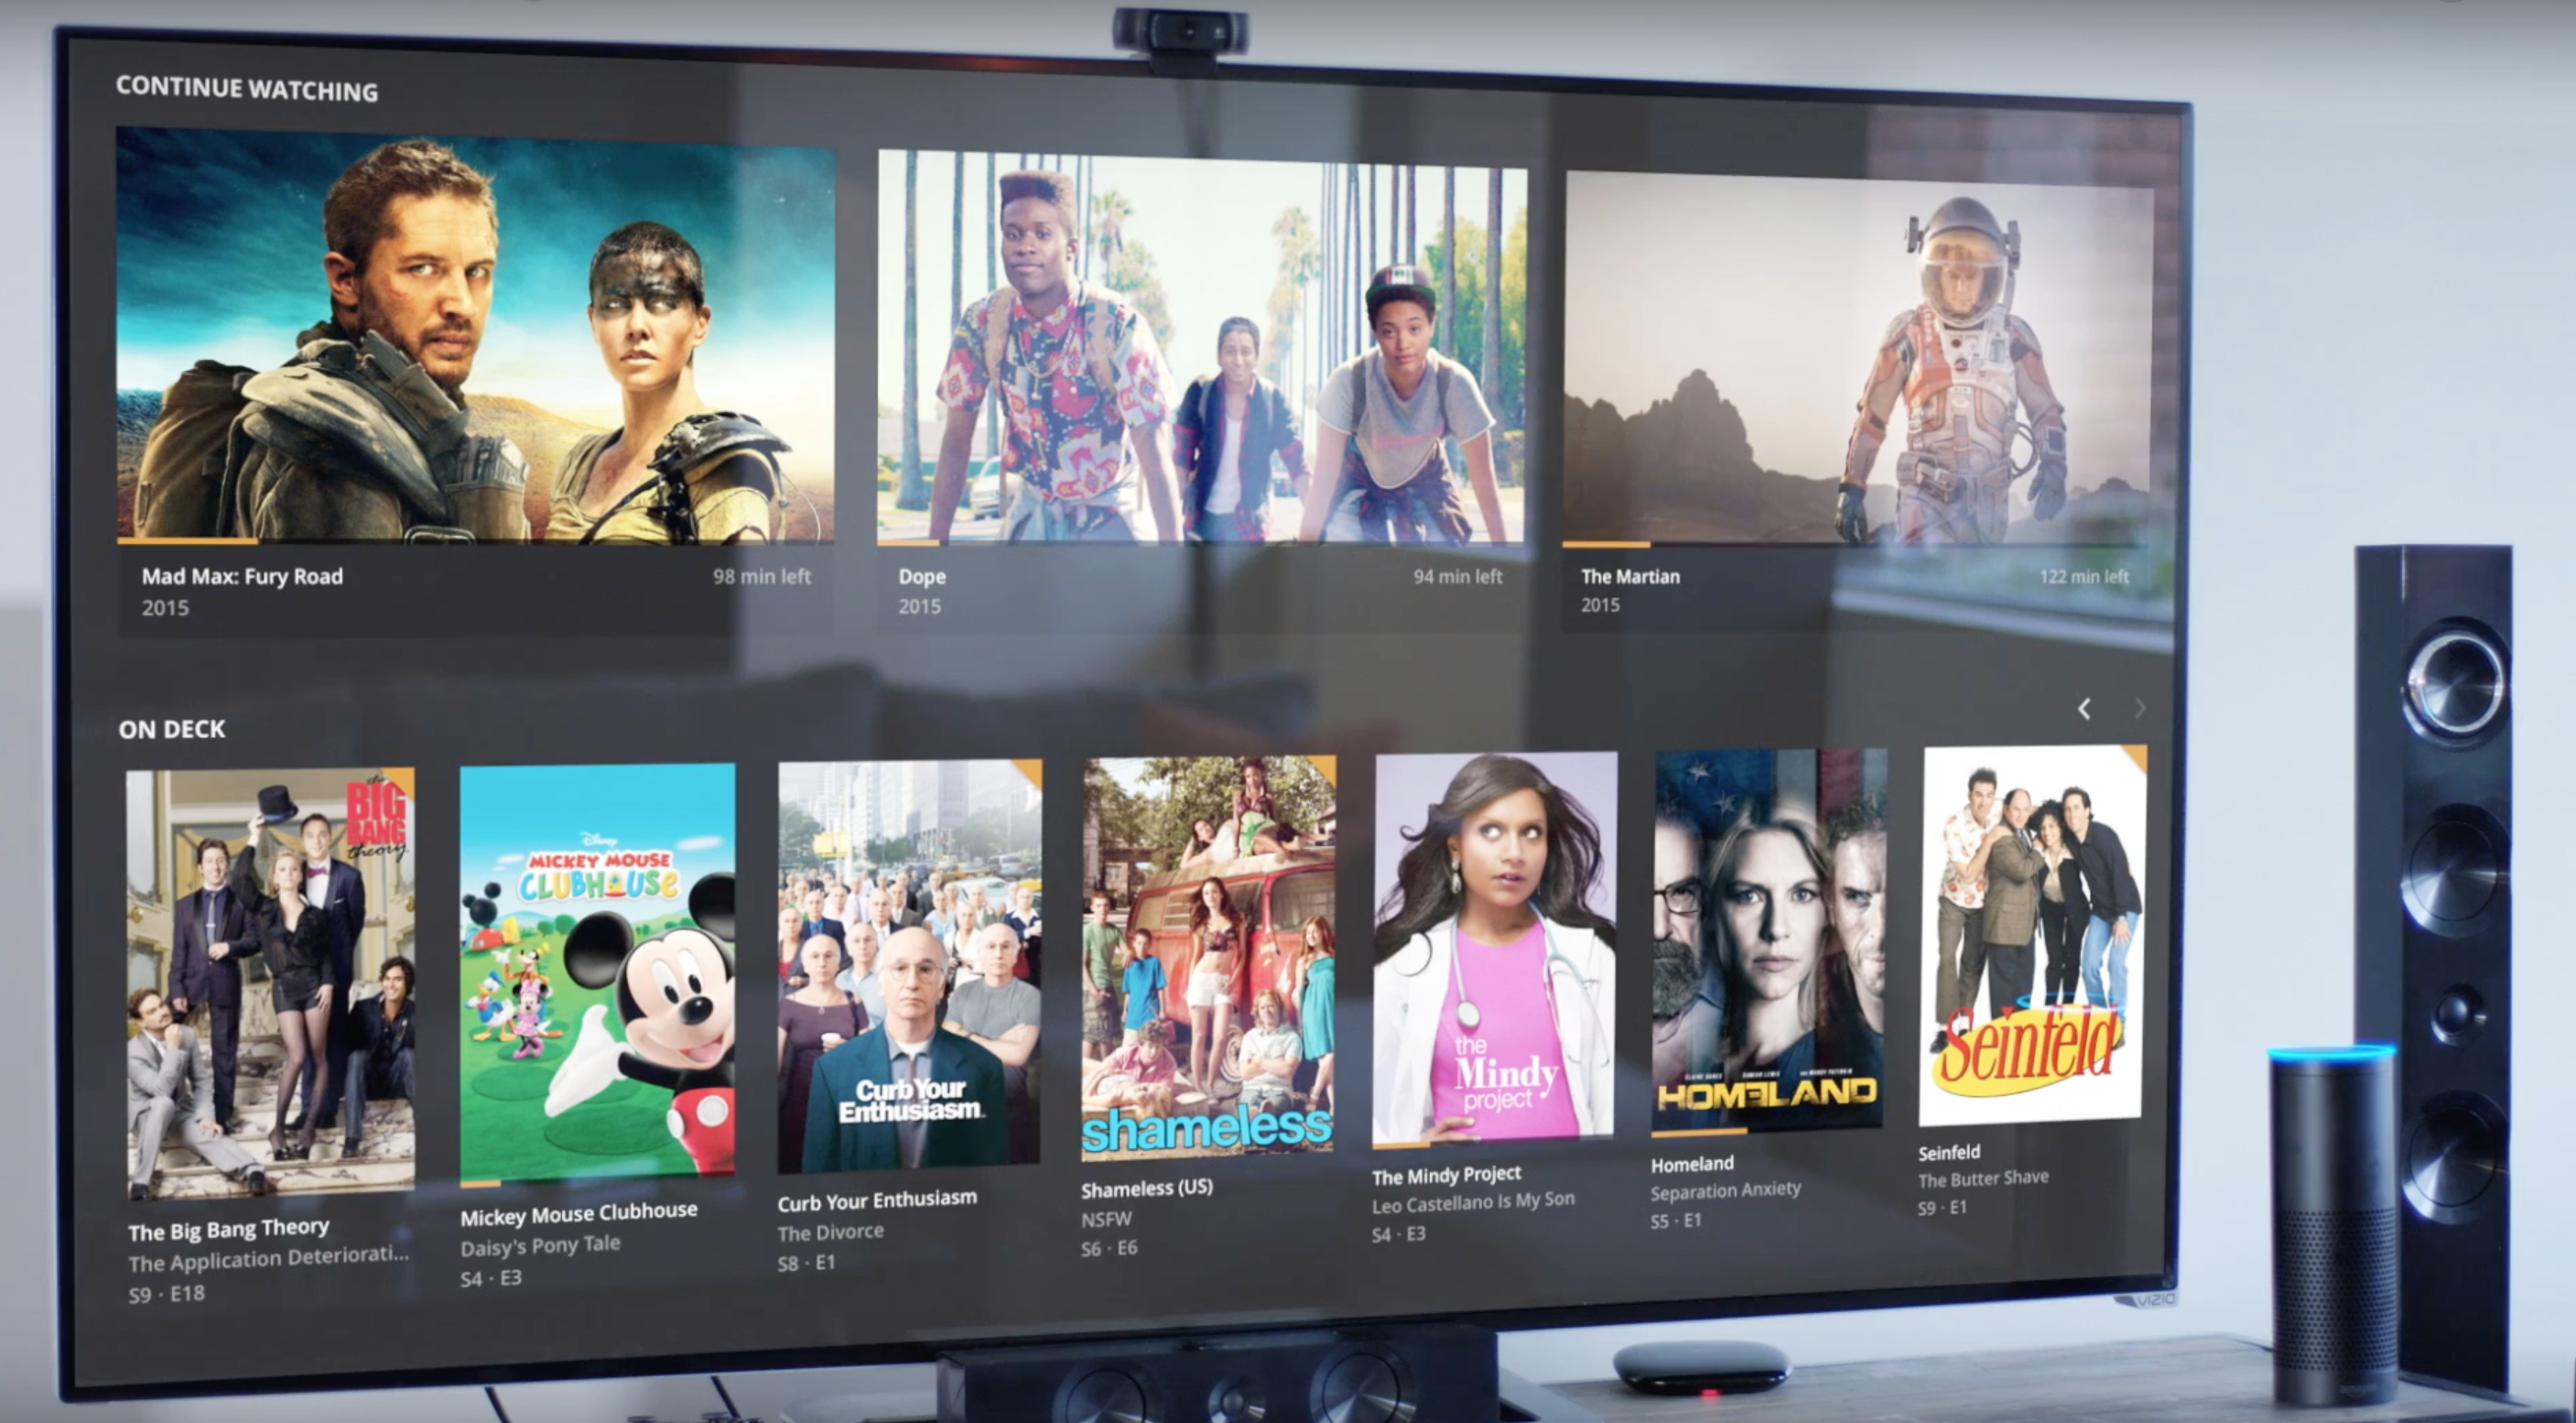 Plex users can now play their movies, TV shows and music just by